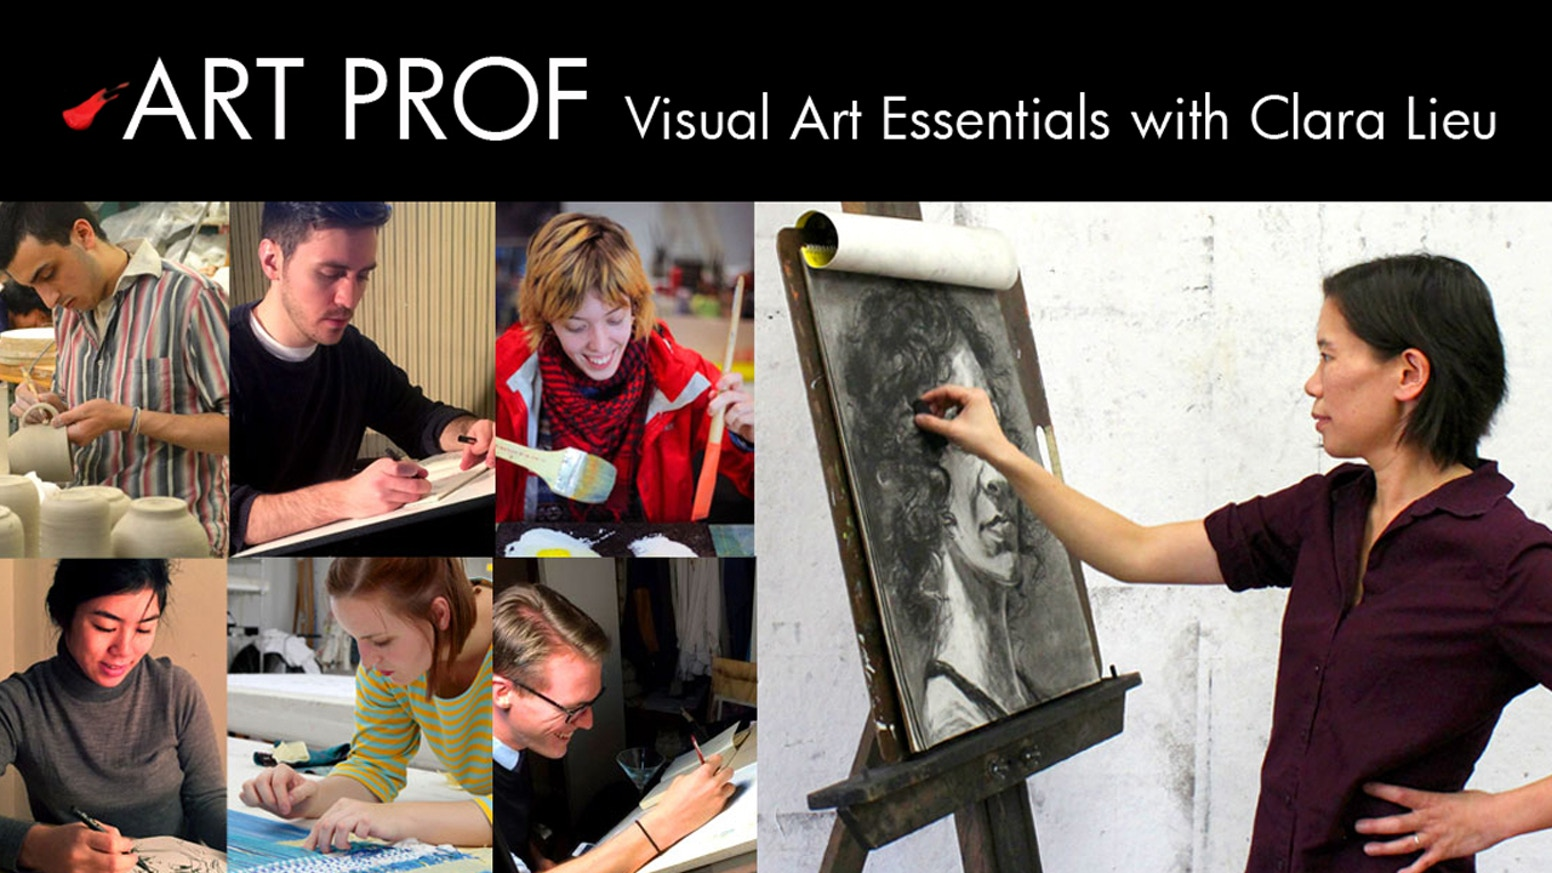 ART PROF is a free, online educational platform for visual arts.  Our mission is to provide equal access to art education for people of all ages and means.